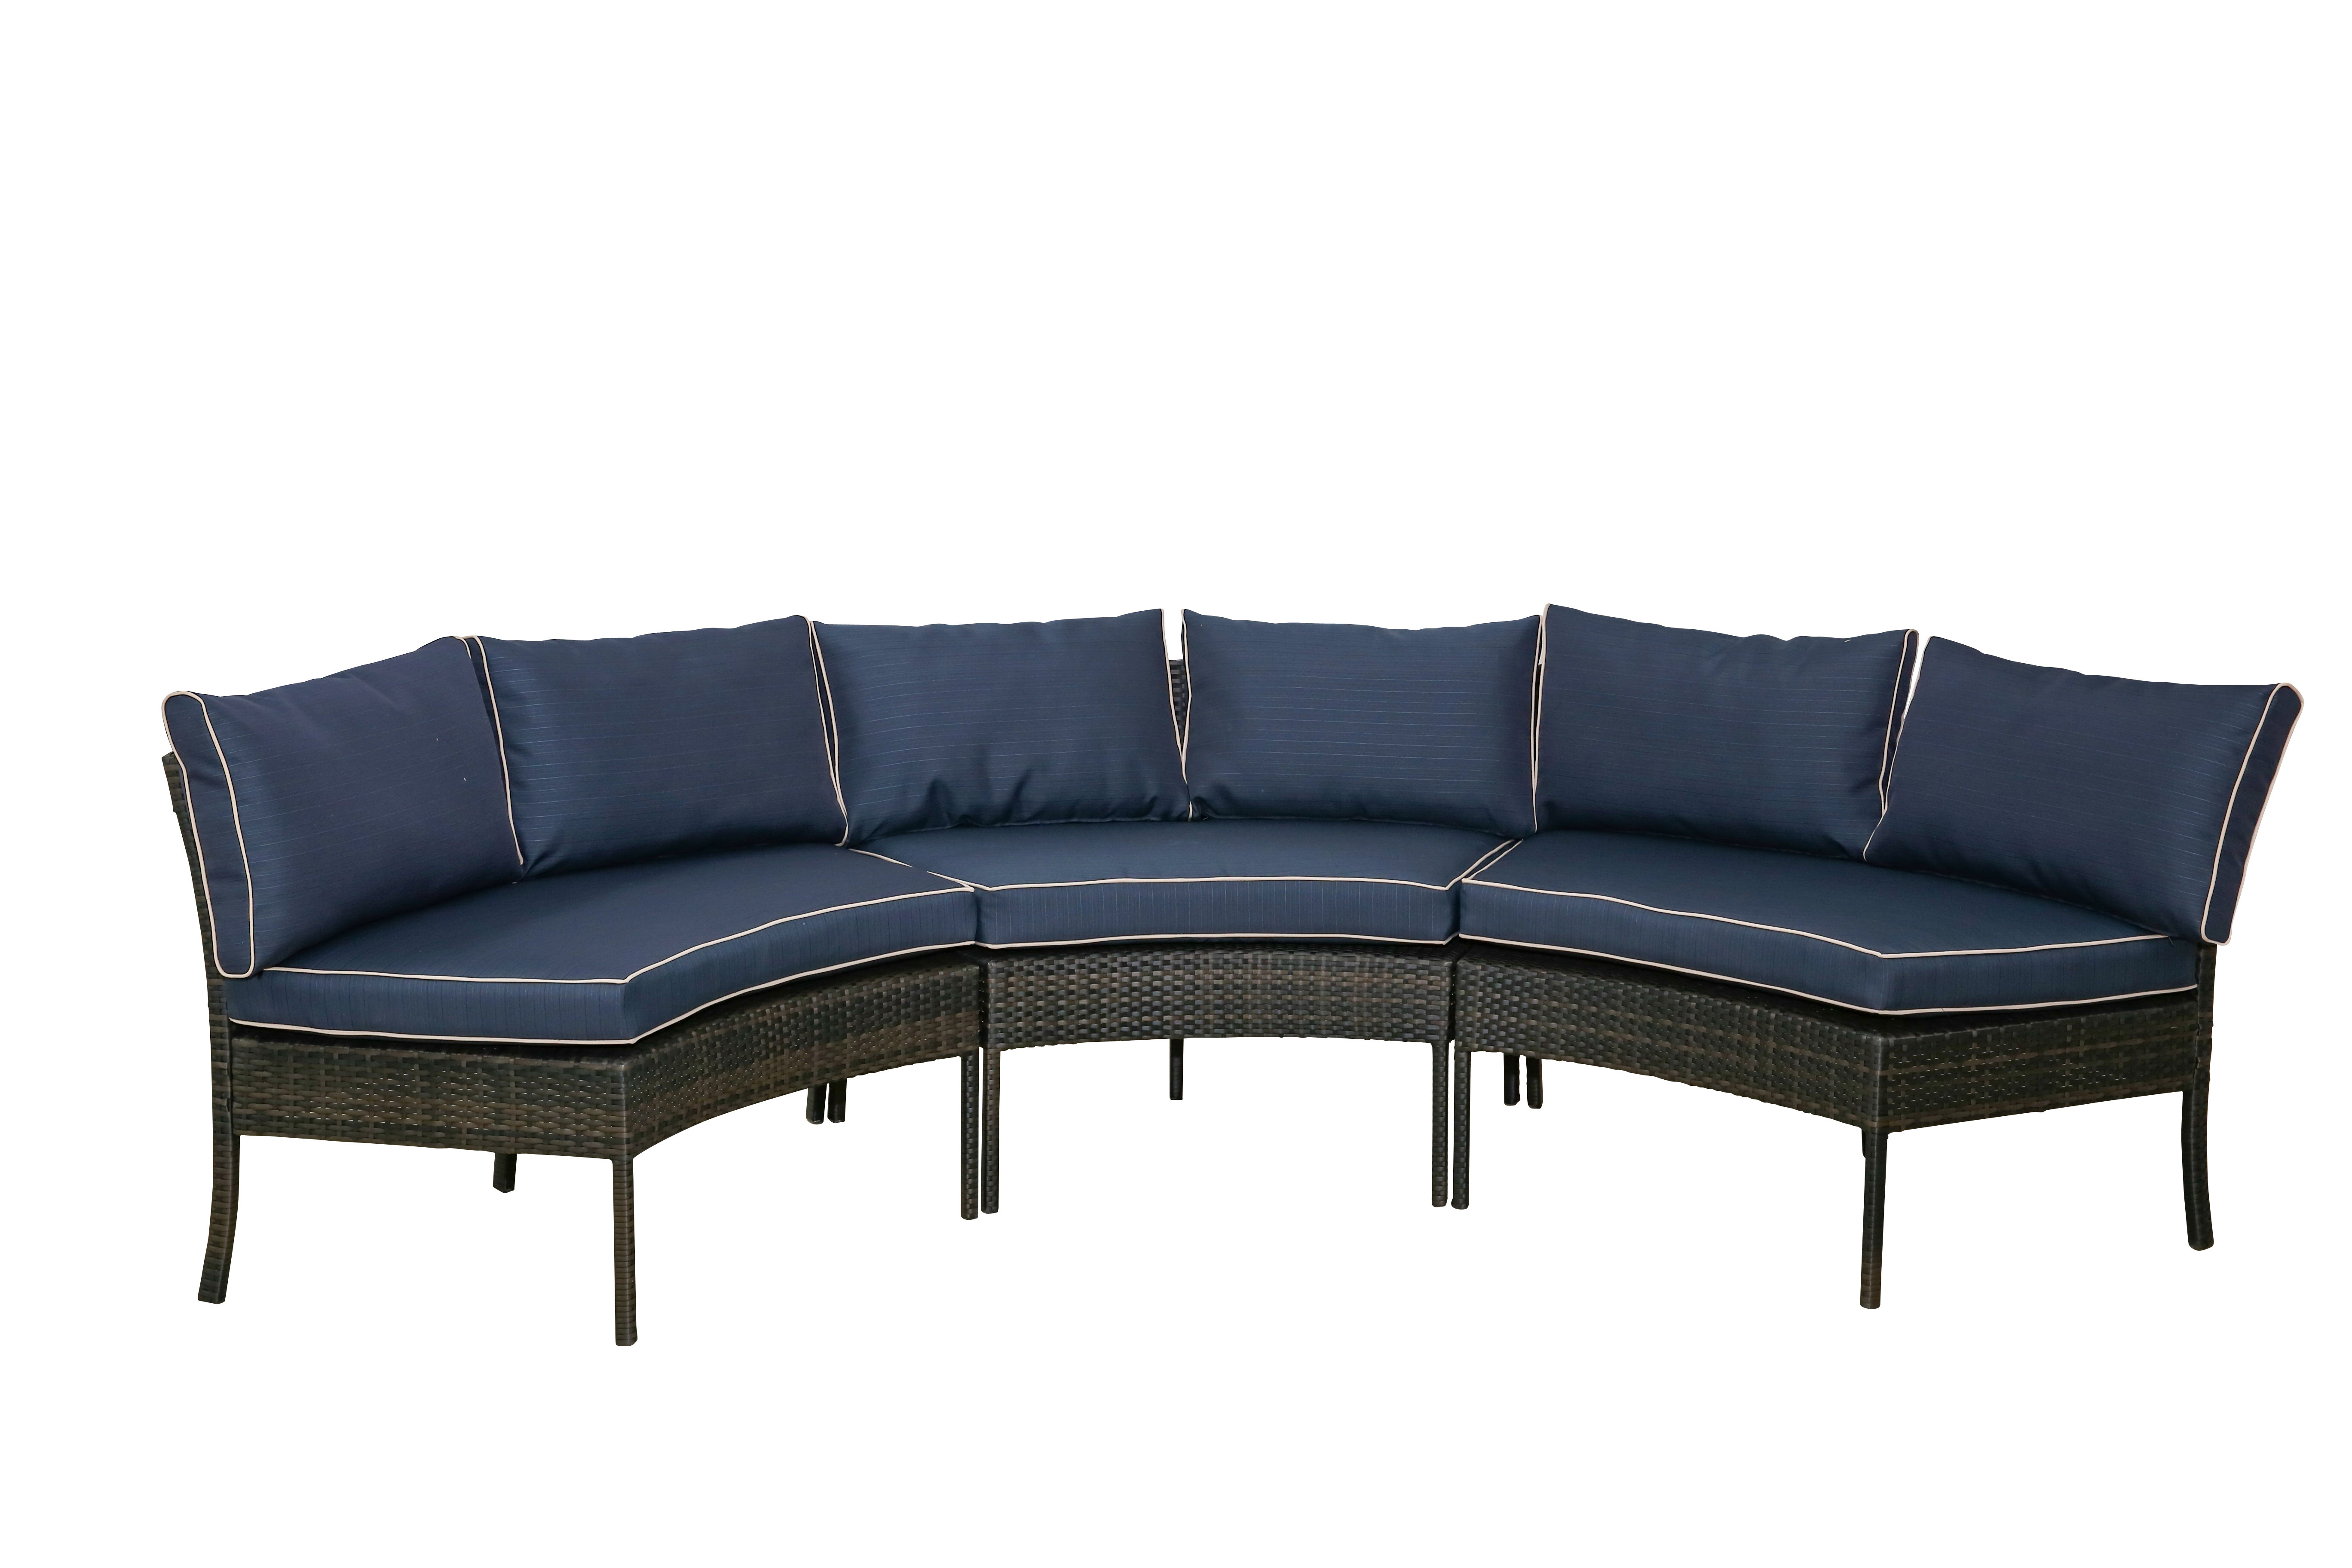 2020 Purington Circular Patio Sectional With Cushions For Purington Circular Patio Sectionals With Cushions (View 3 of 20)